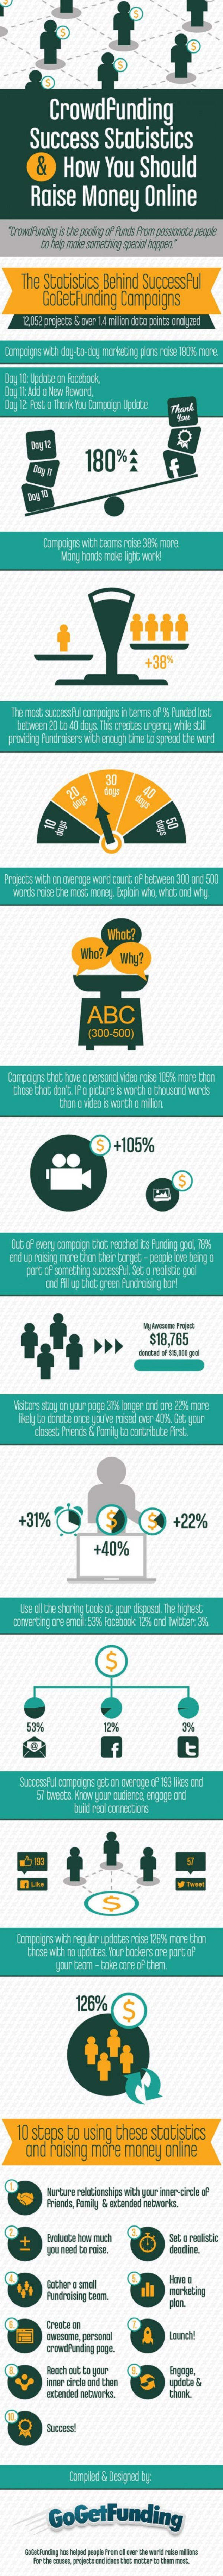 Crowdfunding Success Statistics [Infographic]